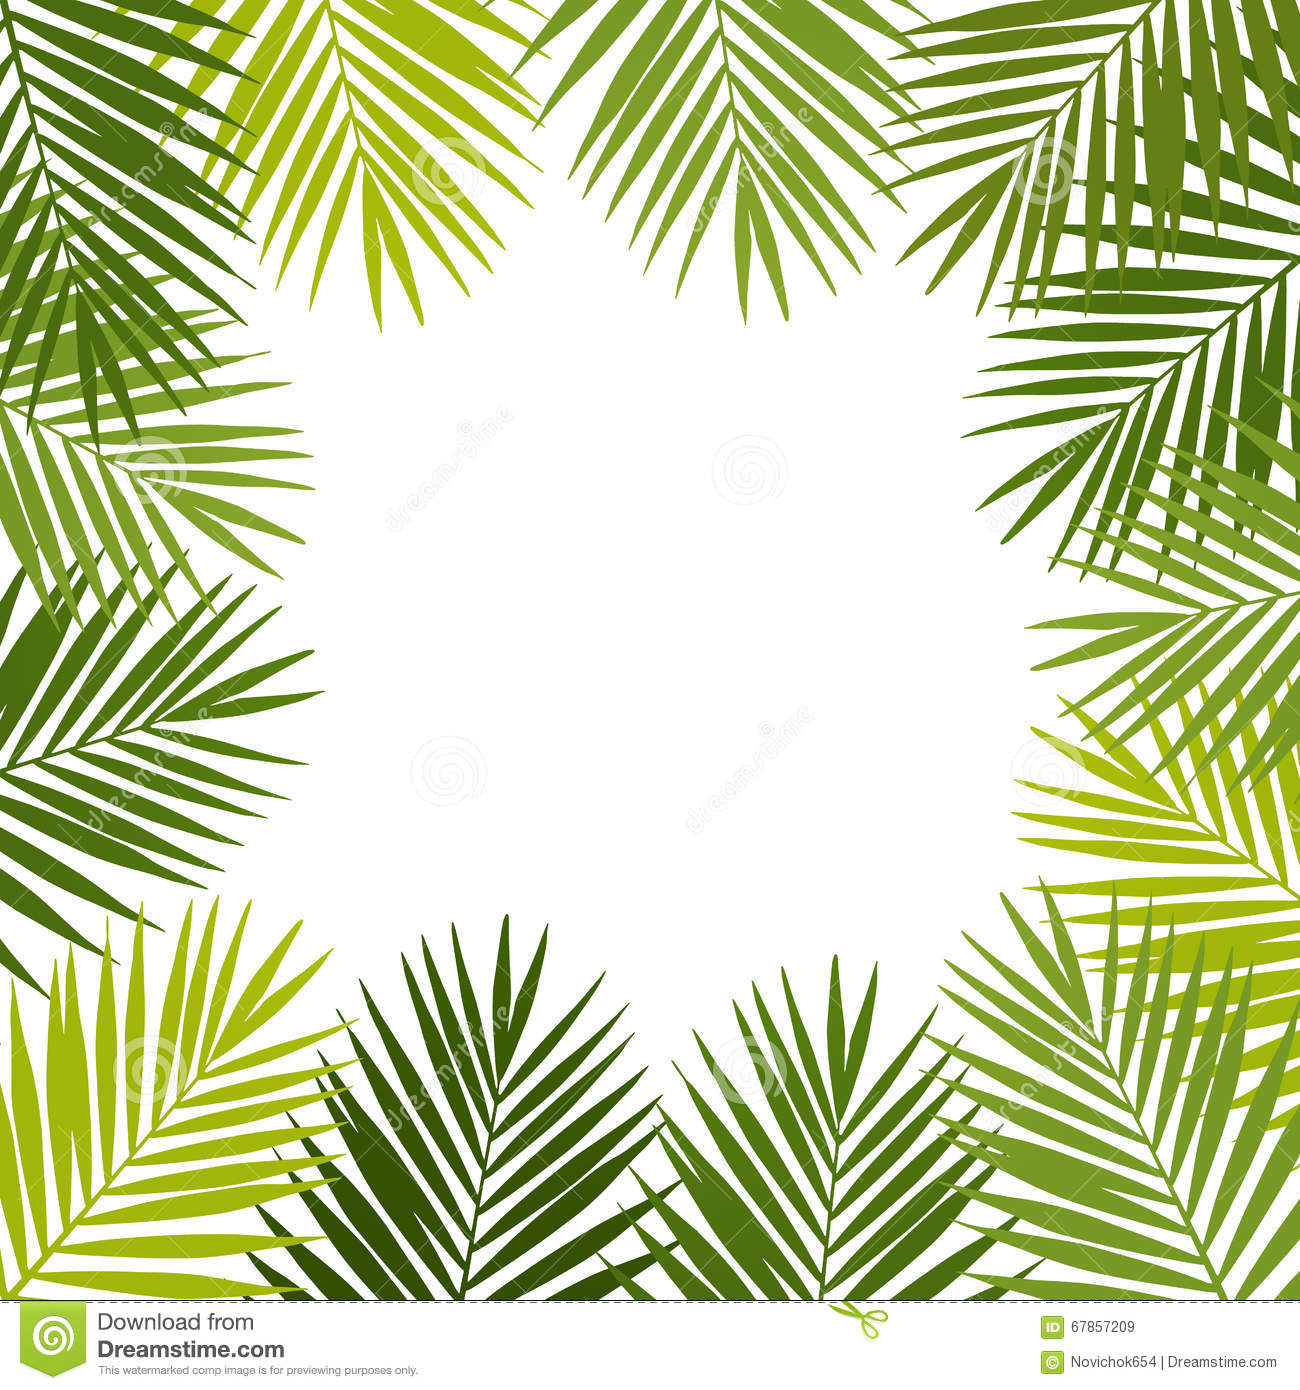 Images for palm tree coloring pages to print www.939buyshop.gq